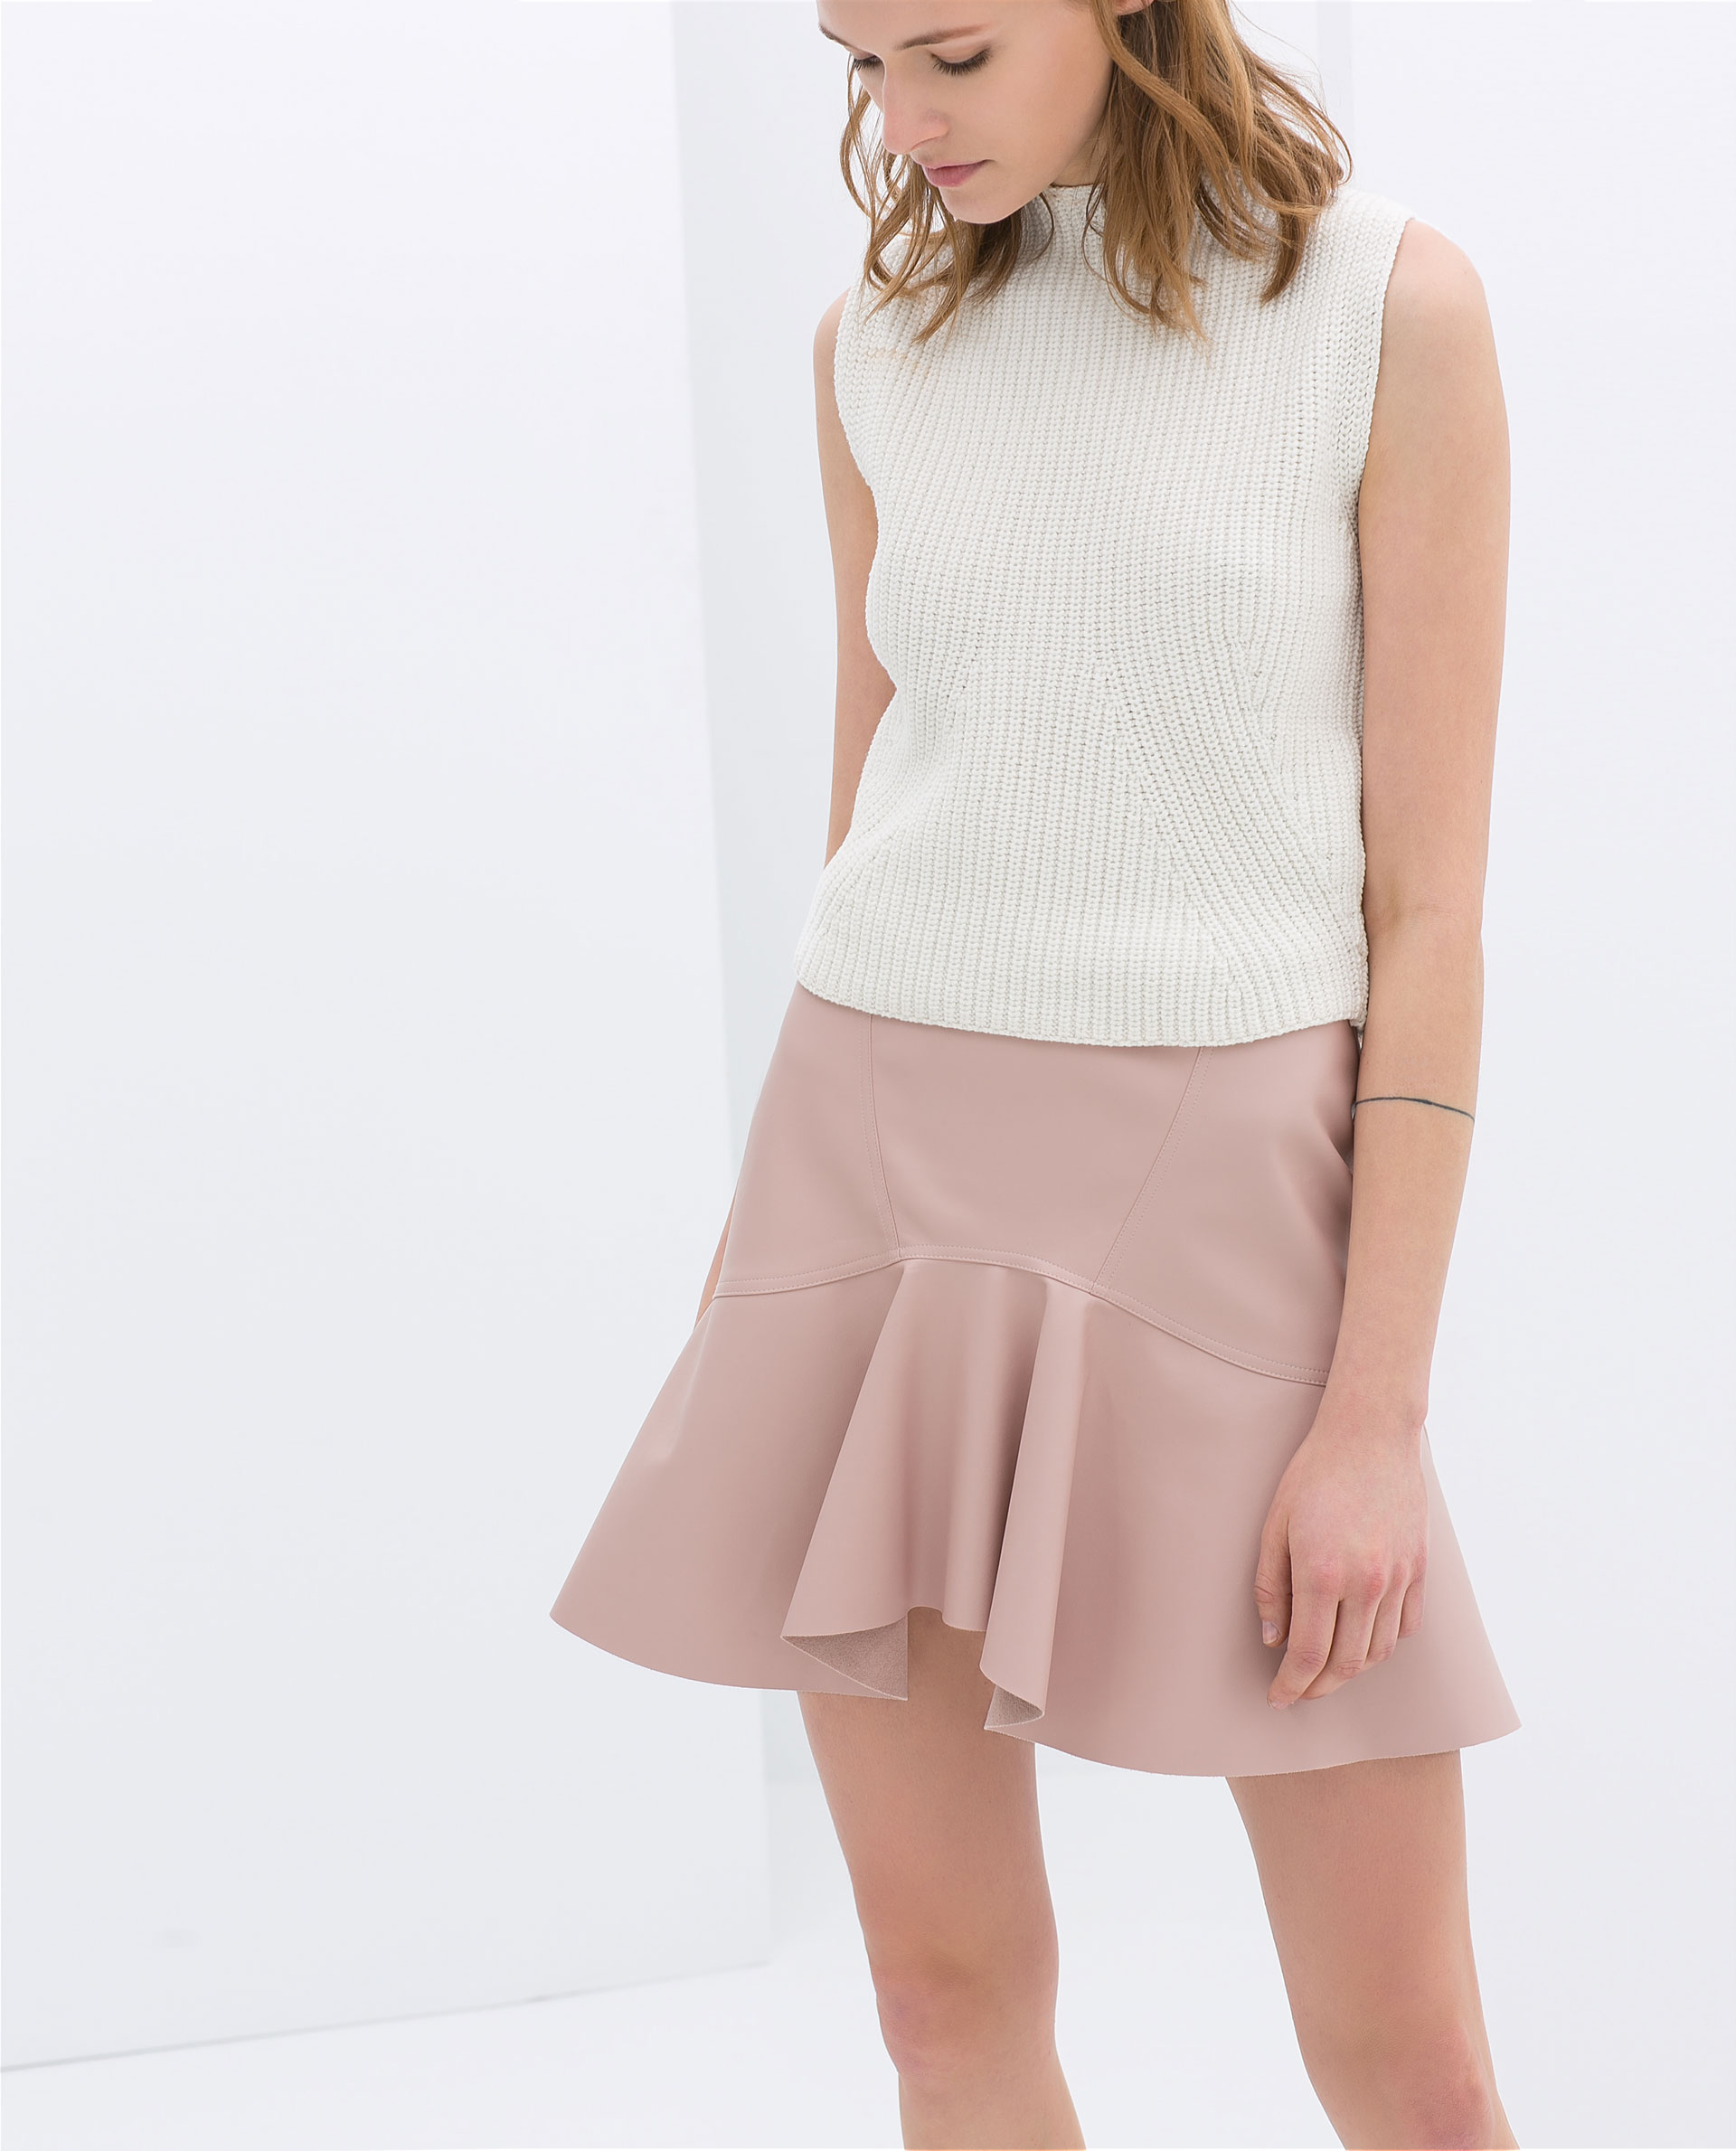 Zara Frilly Faux Leather Skirt in Pink | Lyst